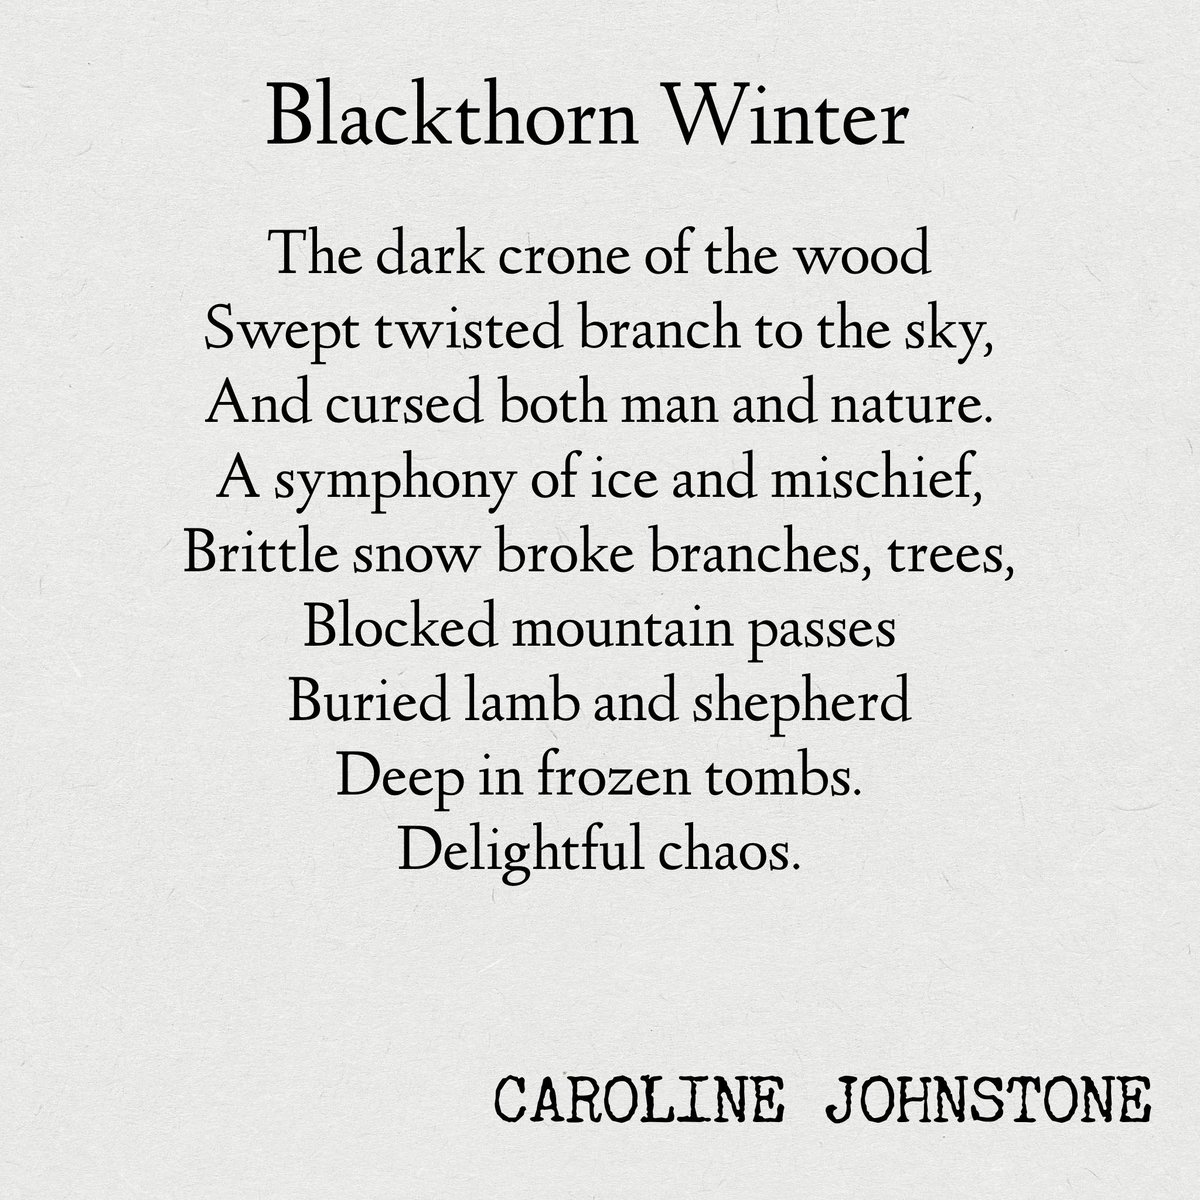 Blackthorn Winter #snowday #poem